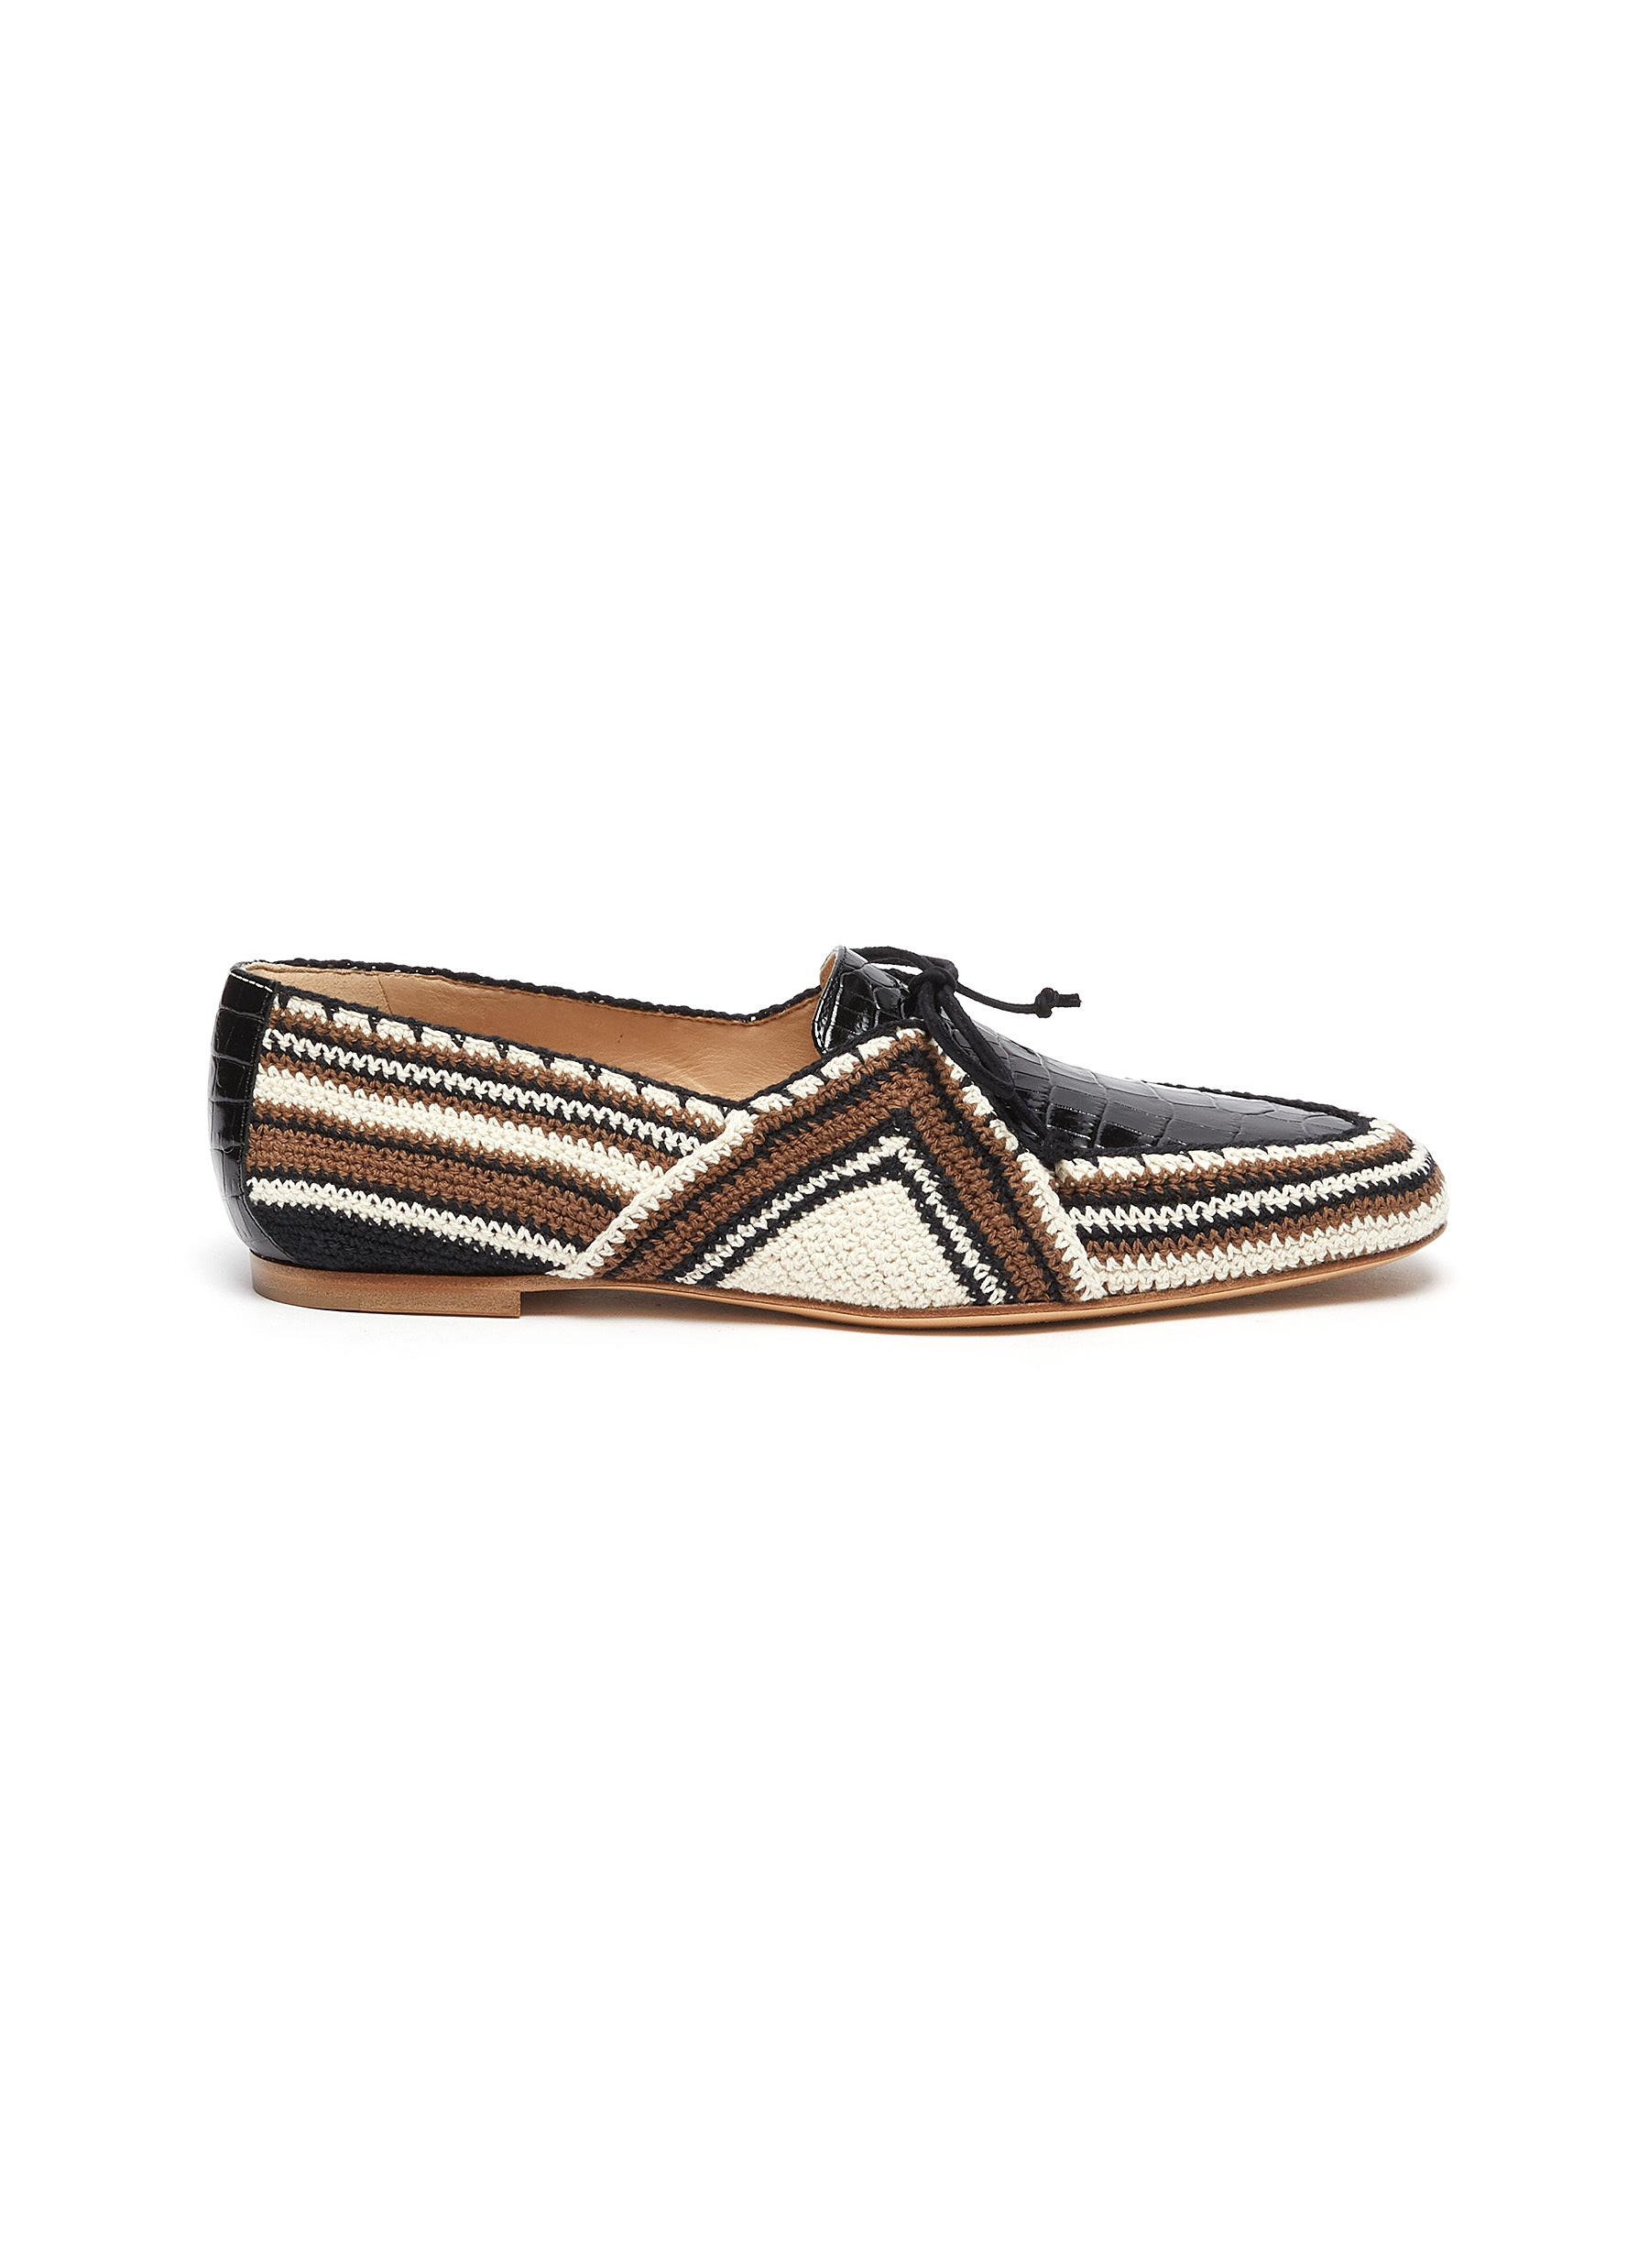 Gabriela Hearst HAYS' KNIT PATENT CROC EMBOSSED LEATHER LOAFERS